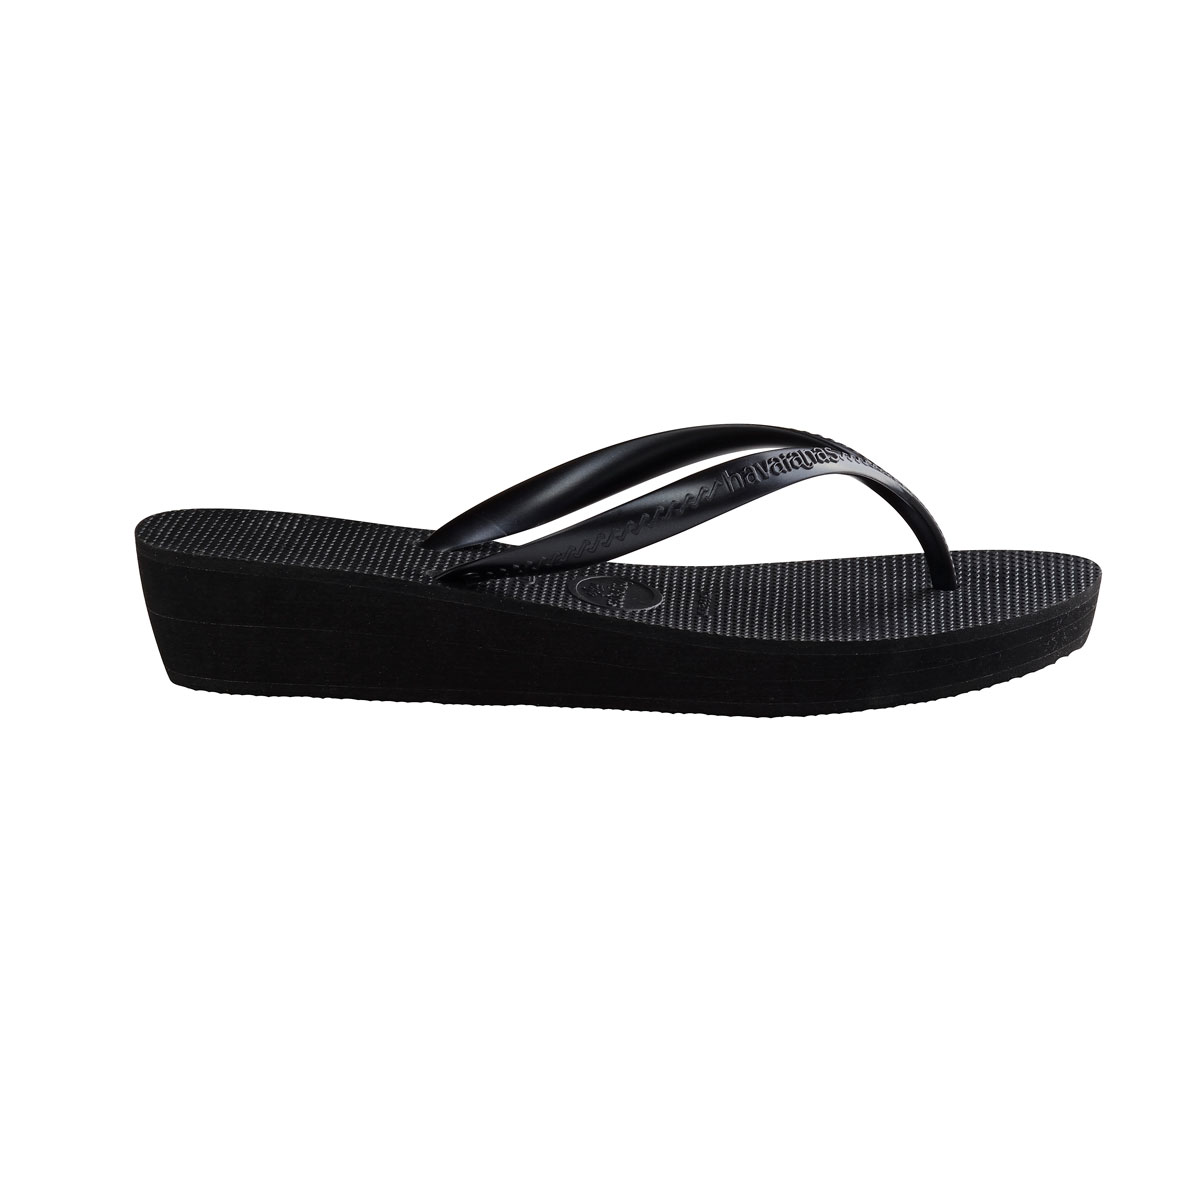 Havaianas Heel Black Wedding Flip Flops